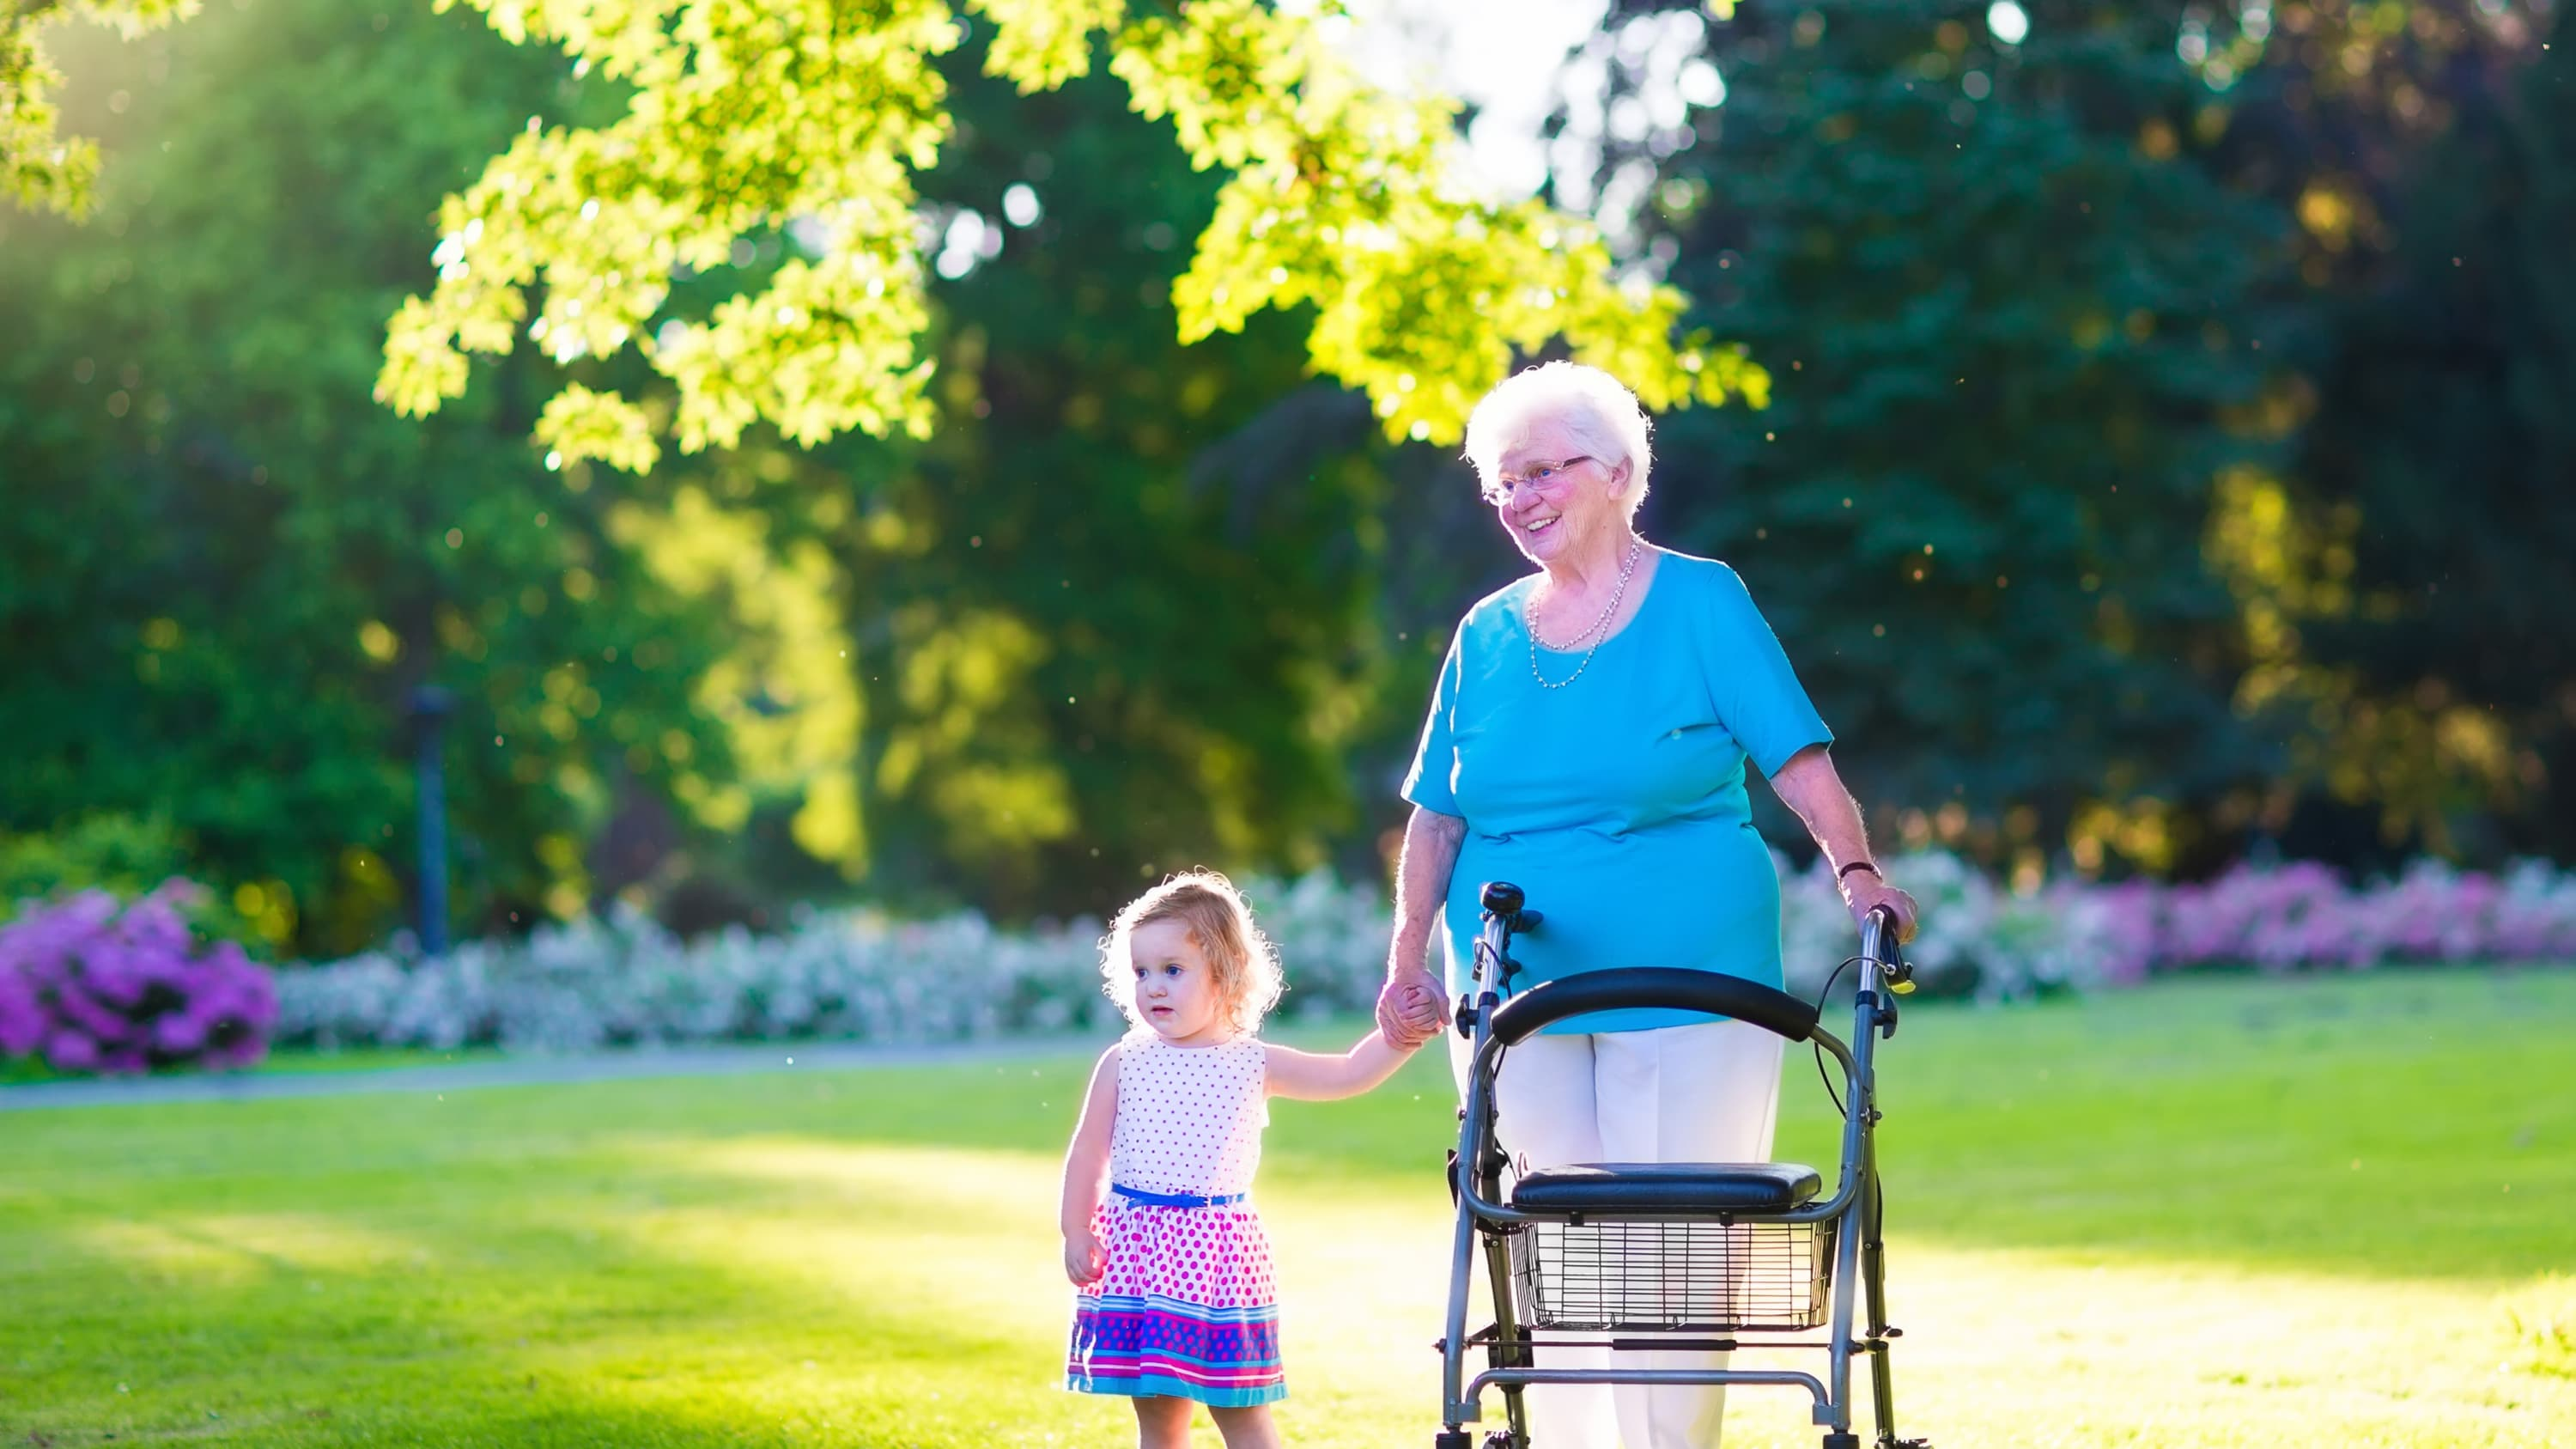 Happy senior lady with a walker or wheel chair and a little girl walk in a park, possibly after the woman had a hip fracture